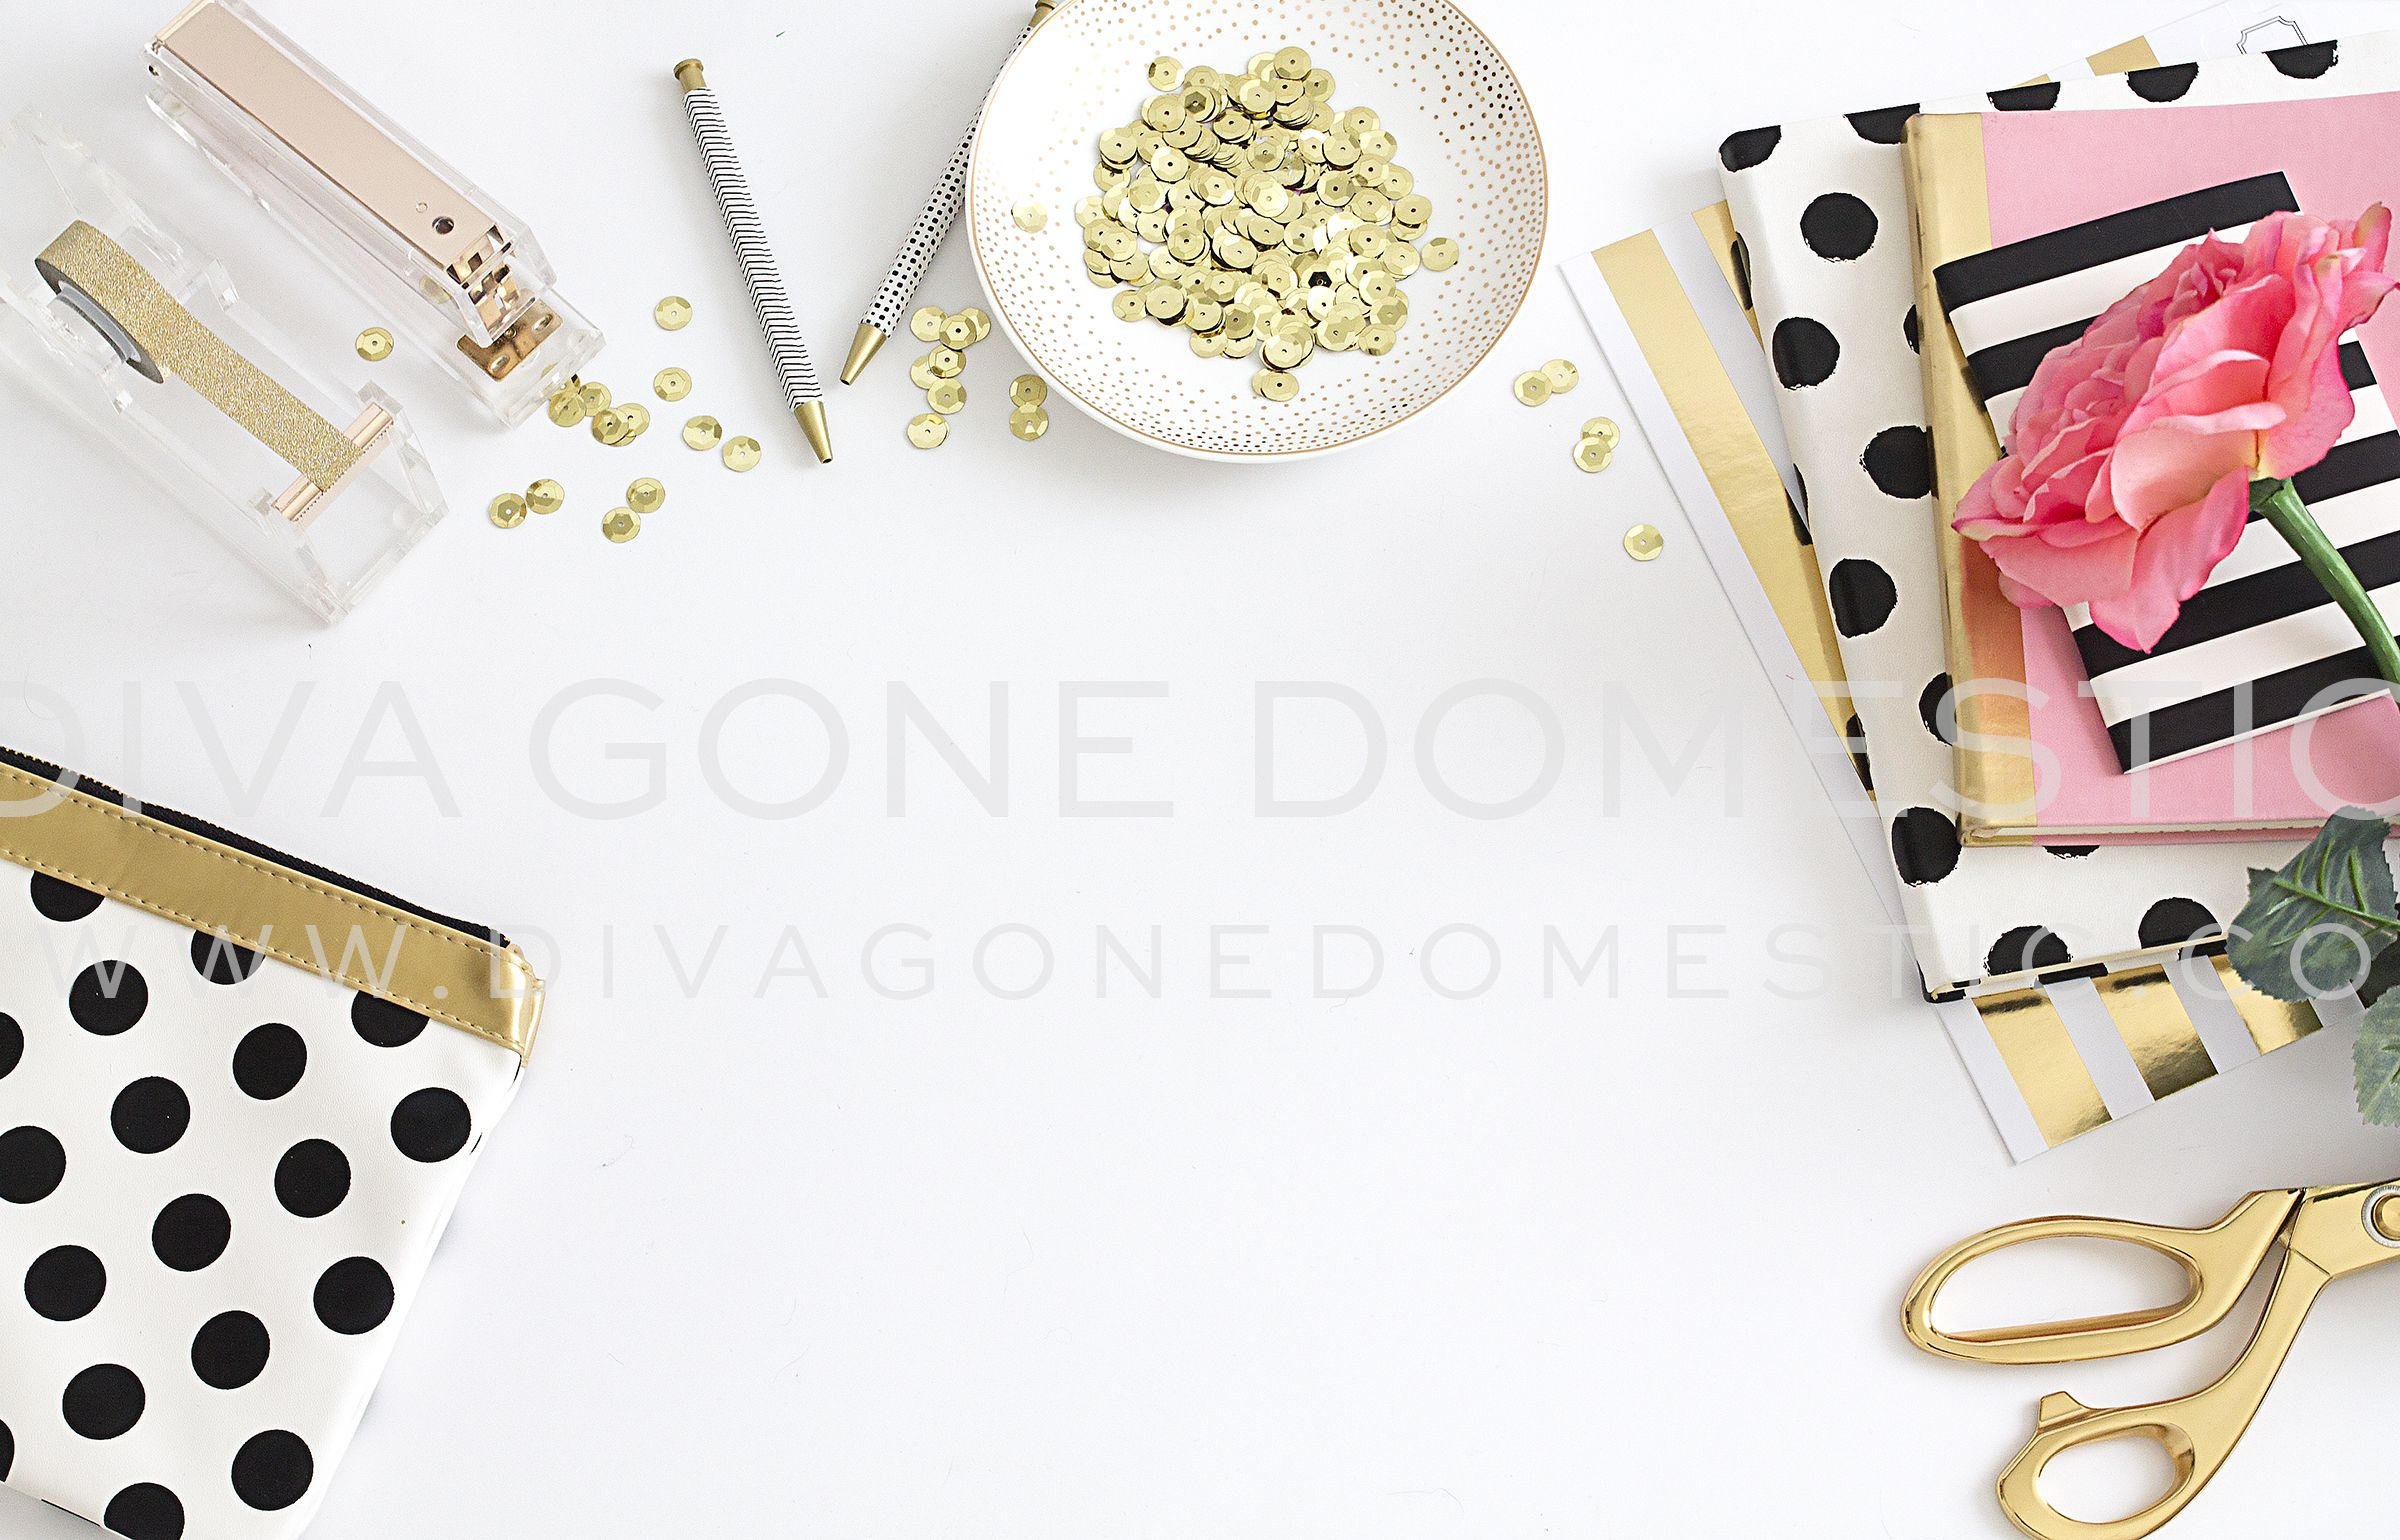 office desk tops. styled desk top chic modern office by divagonedomestic on creative market tops